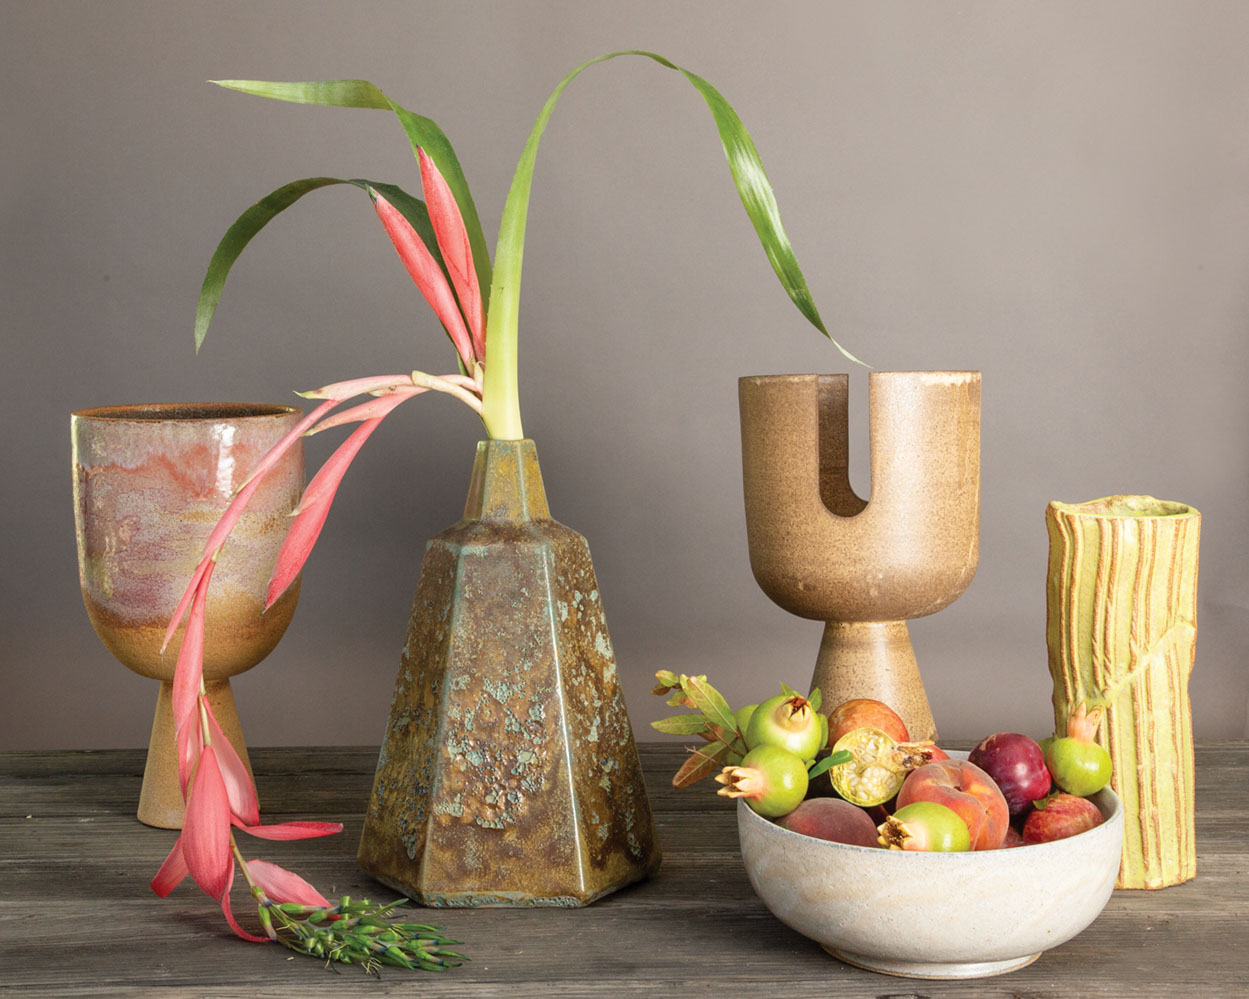 Ceramic vases and bowls by Josh Beckman of FBP Works